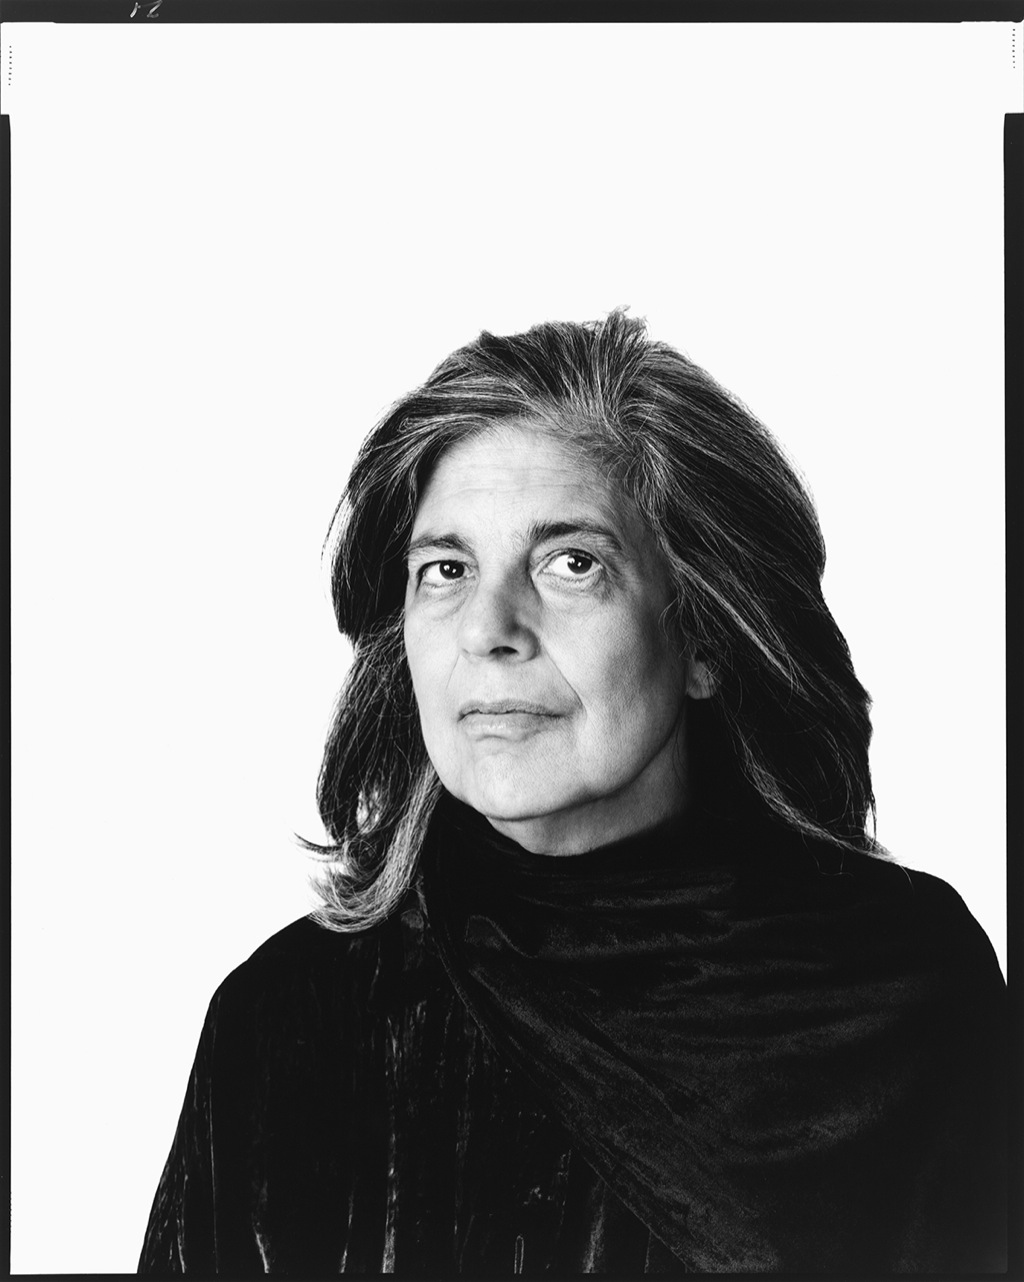 Susan Sontag, writer, New York City, February 11, 2000